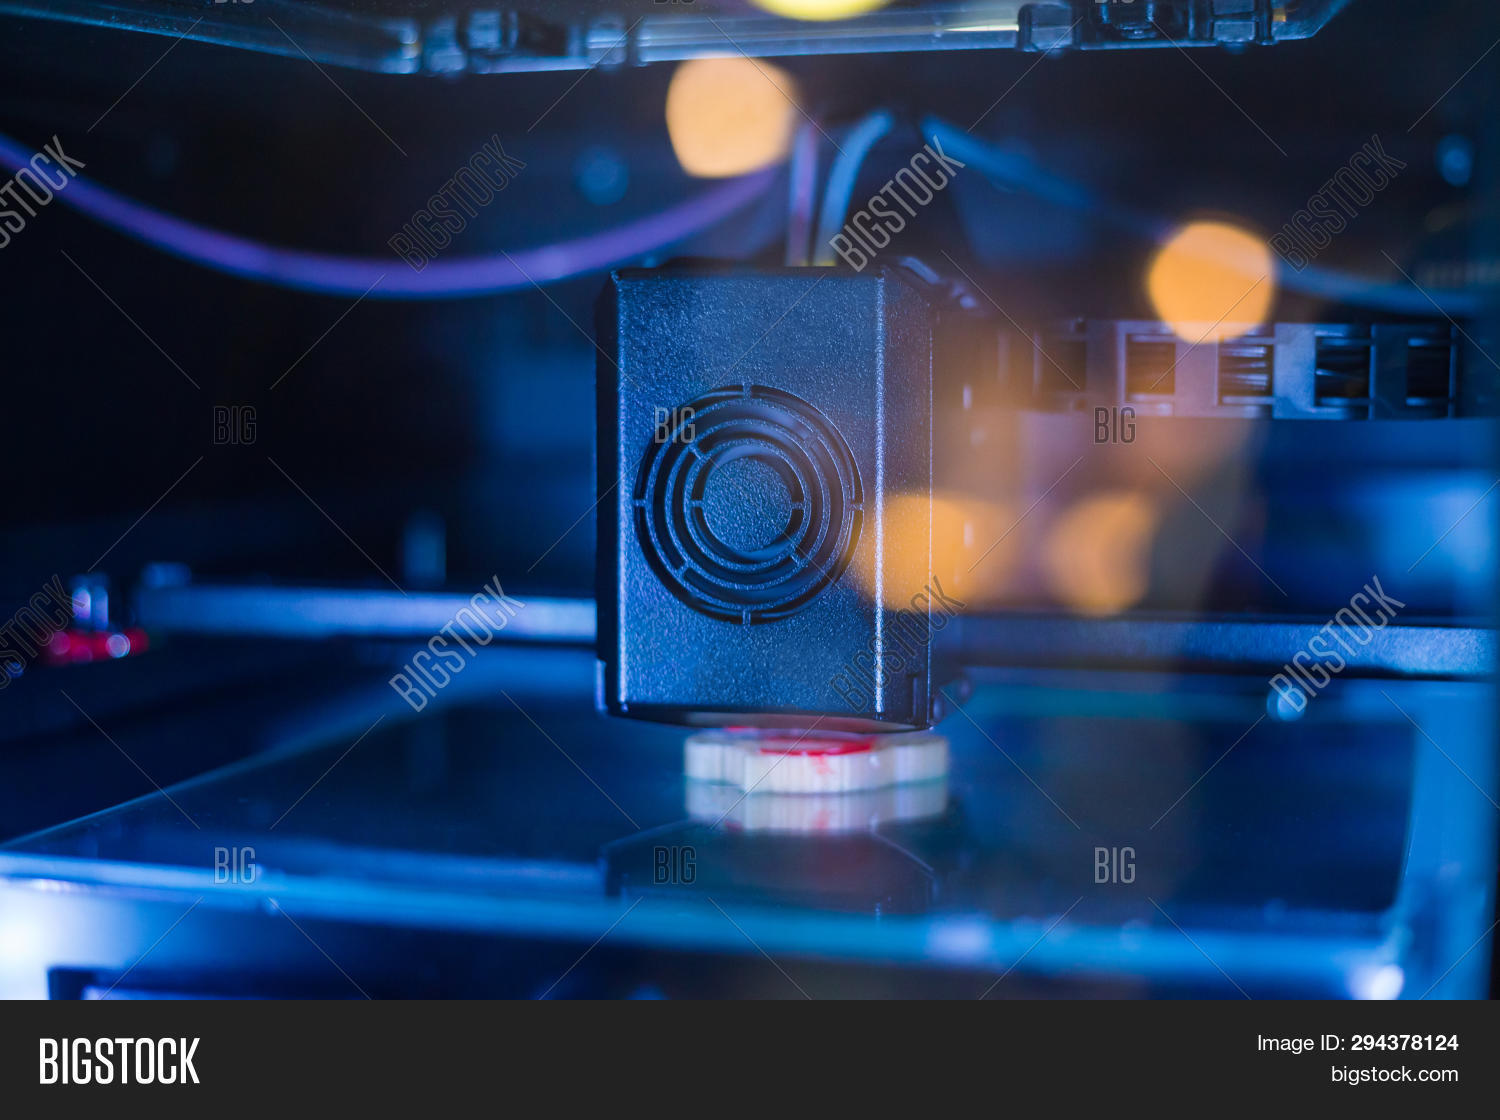 3d,automatic,blue,bokeh,business,closeup,conference,creativity,education,element,figure,figurine,filament,flat,illumination,industrial,industry,lab,laboratory,machine,make,manufacturing,material,mechanic,miniature,model,modeling,new,nobody,object,office,plastic,print,printer,printing,process,product,production,project,prototype,reflection,revolution,slim,technology,tool,toy